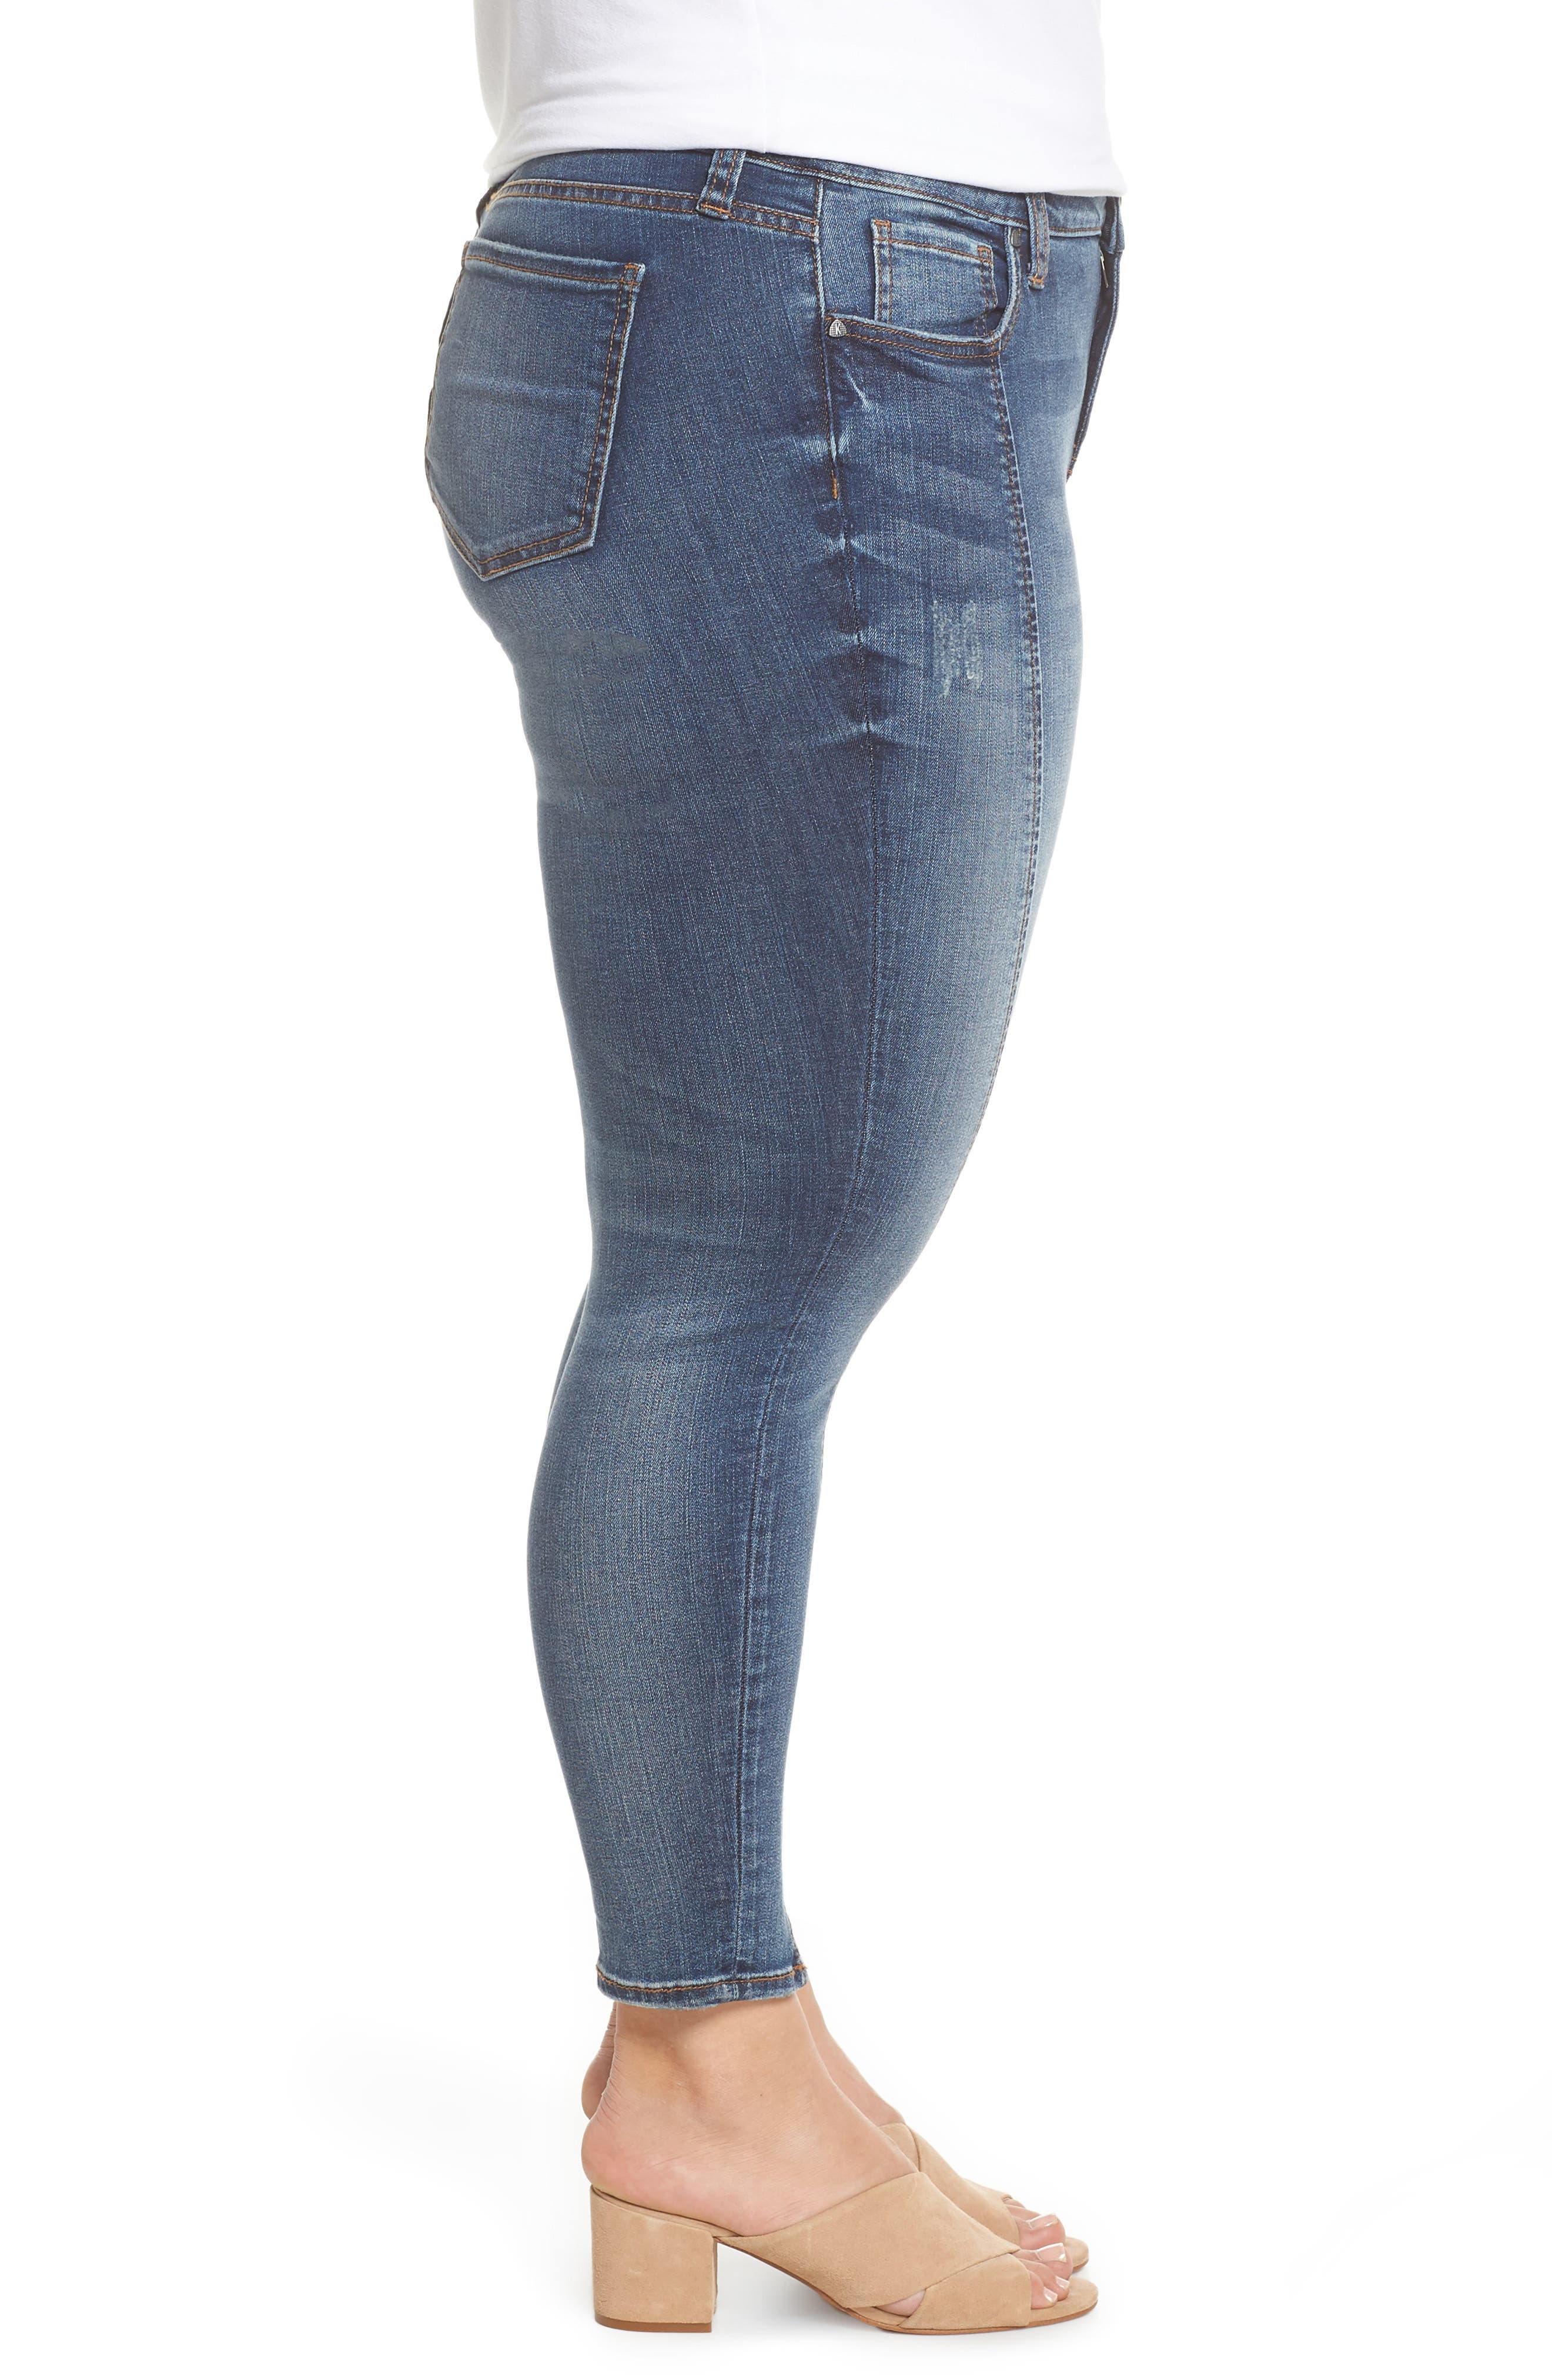 Reese Seam Ankle Skinny Jeans,                             Alternate thumbnail 4, color,                             Poetic